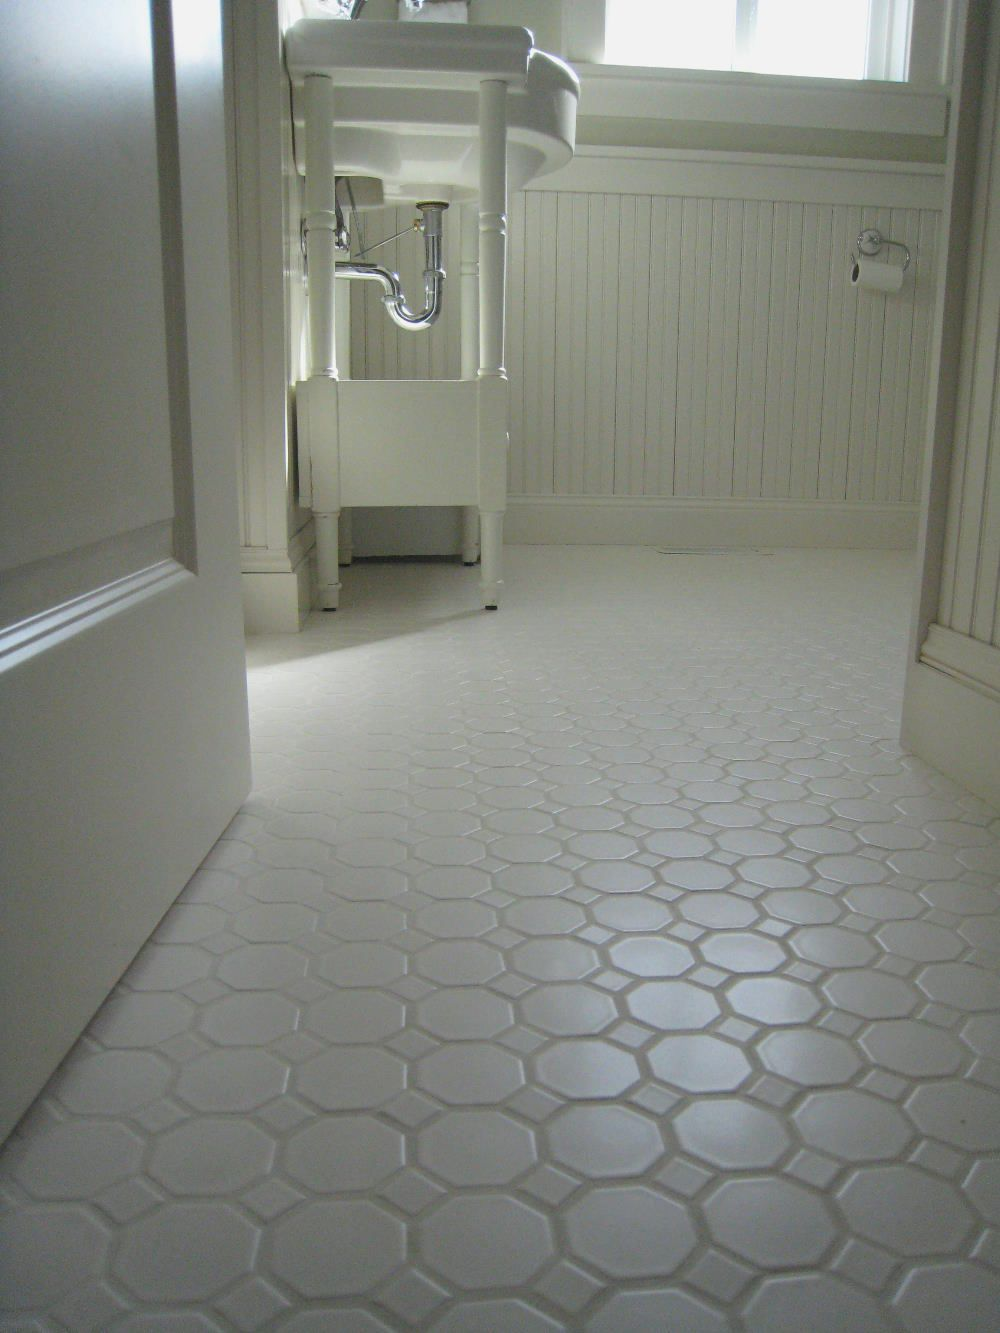 Non Slip Bathroom Floor Tiles Modern Home Design Non Slip Bathroom Flooring Bathroom Flooring Bathroom Floor Tiles